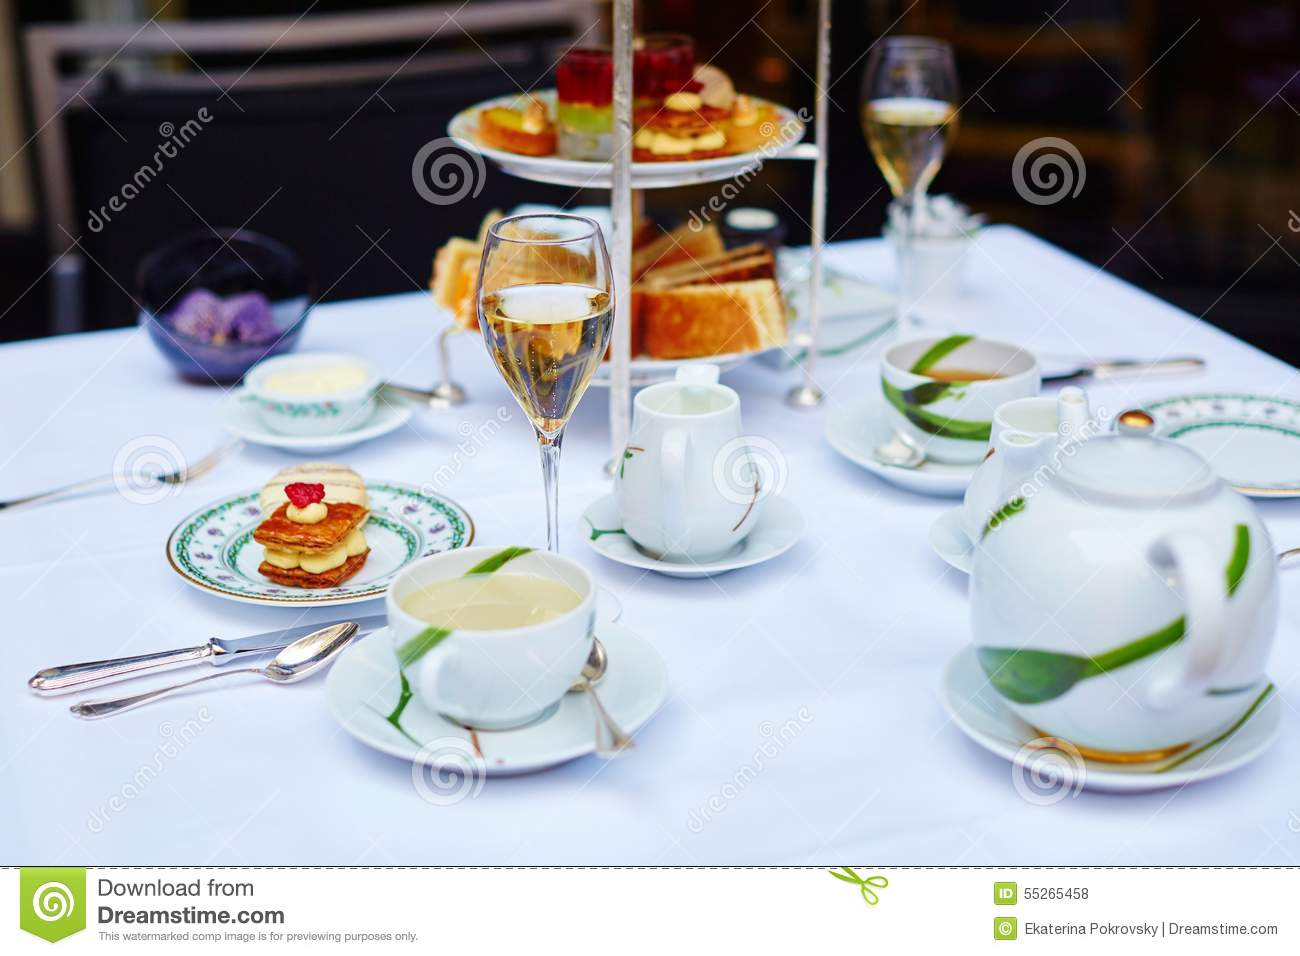 High tea fancy tea cup stock image. Image of africa, colorful - 53076571